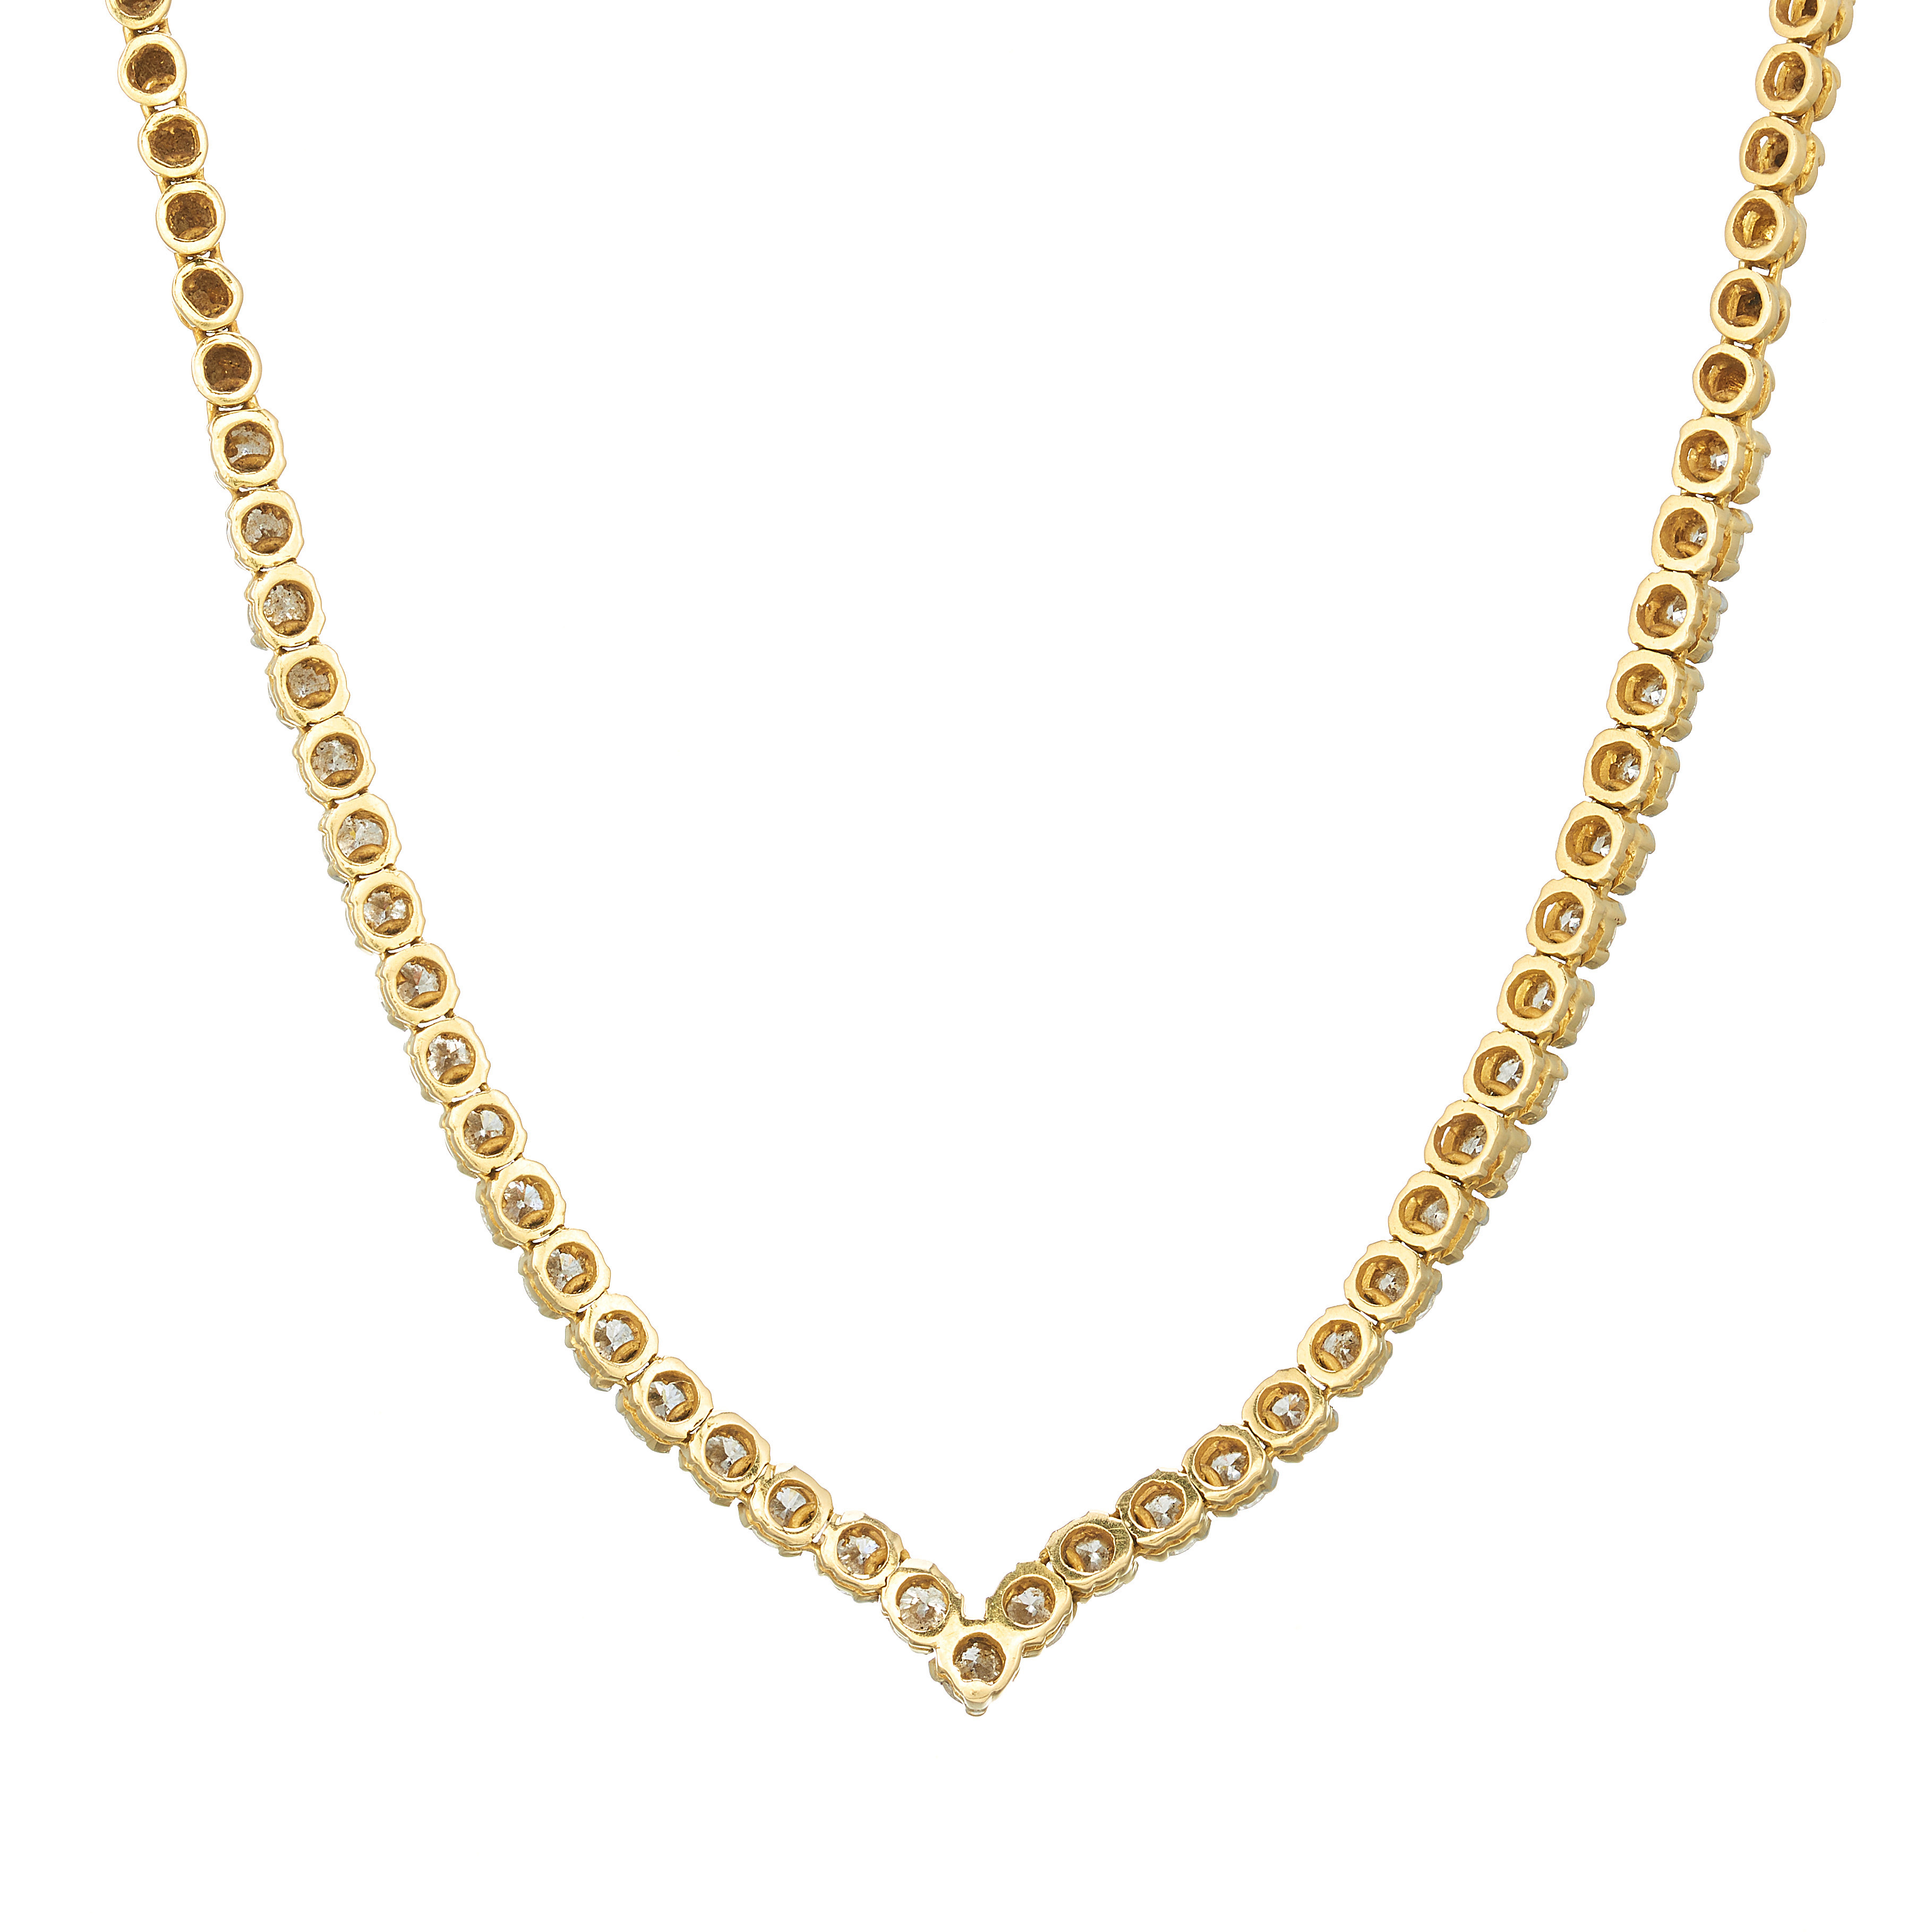 An 18ct gold diamond line necklace - Image 2 of 3